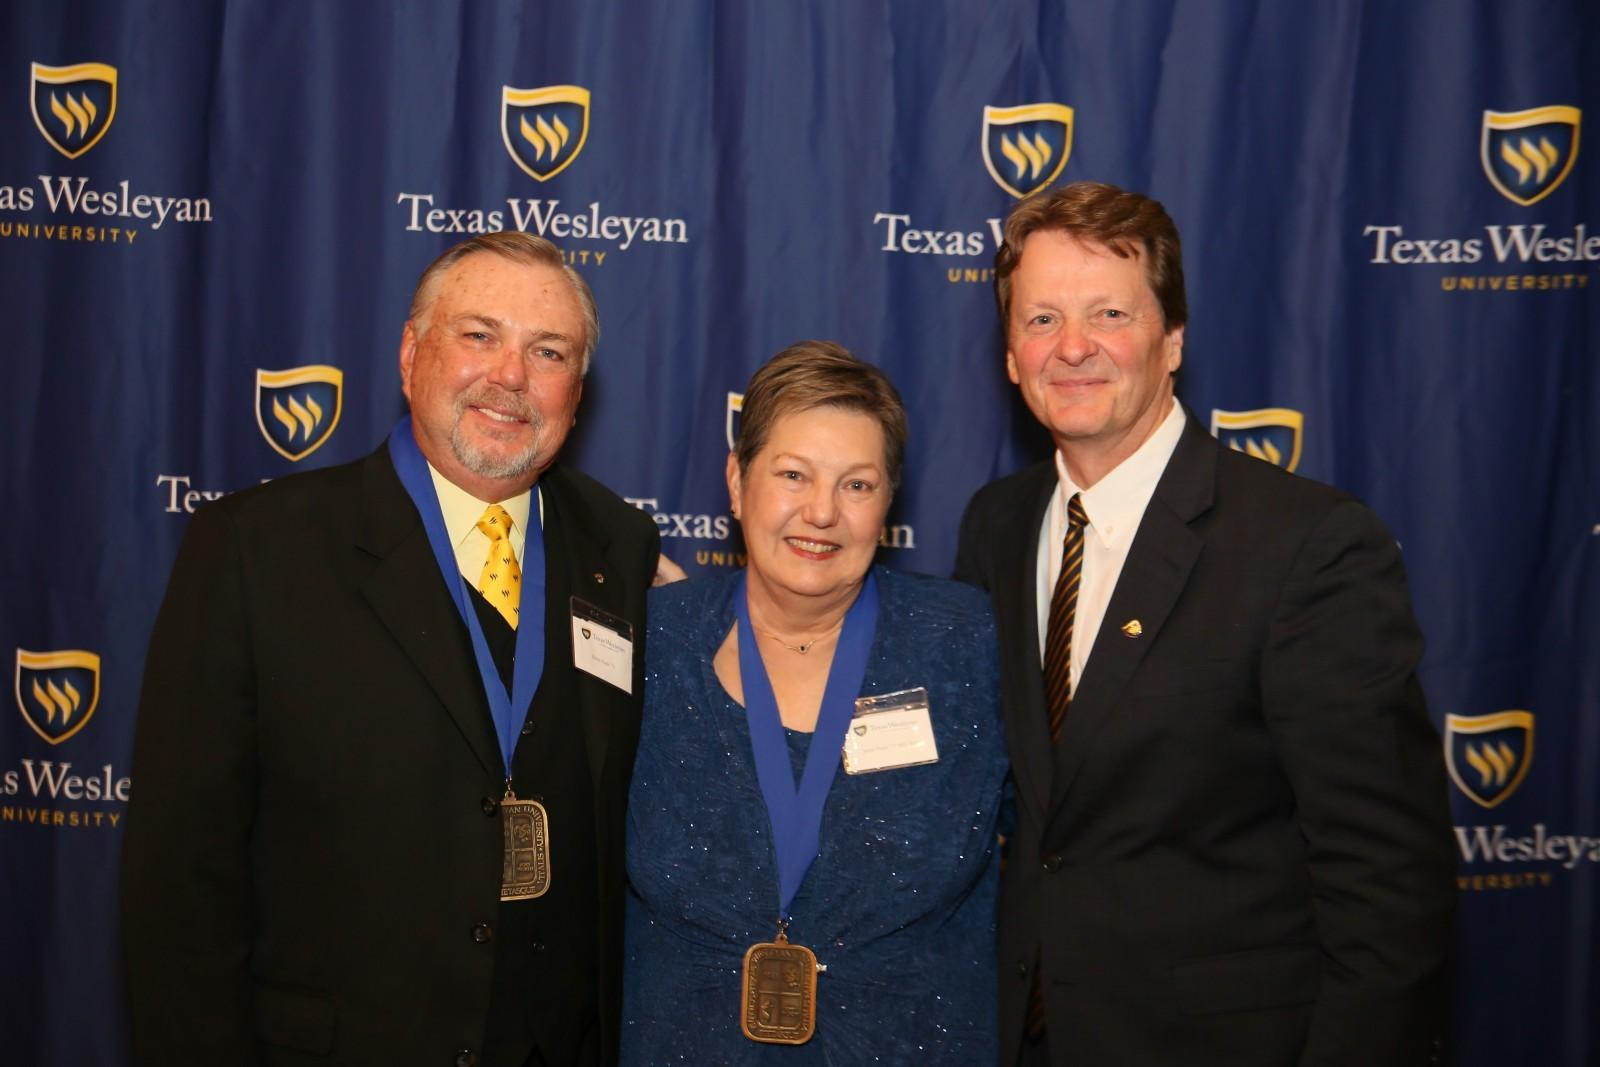 Awards dinner honors alumni